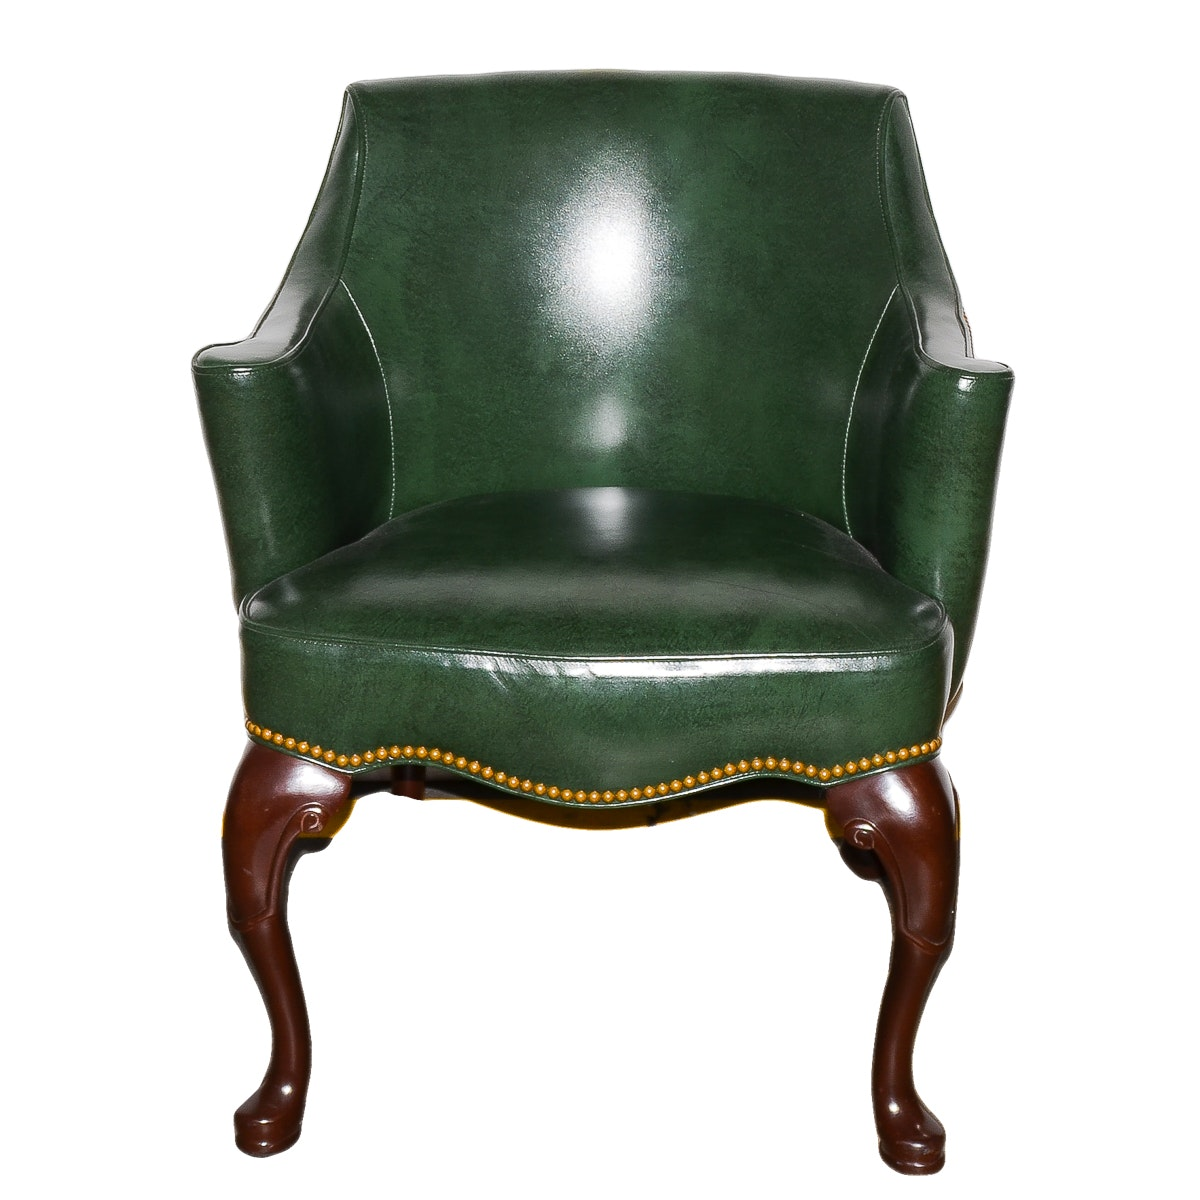 Hancock & Moore Leather Chair With Pillow